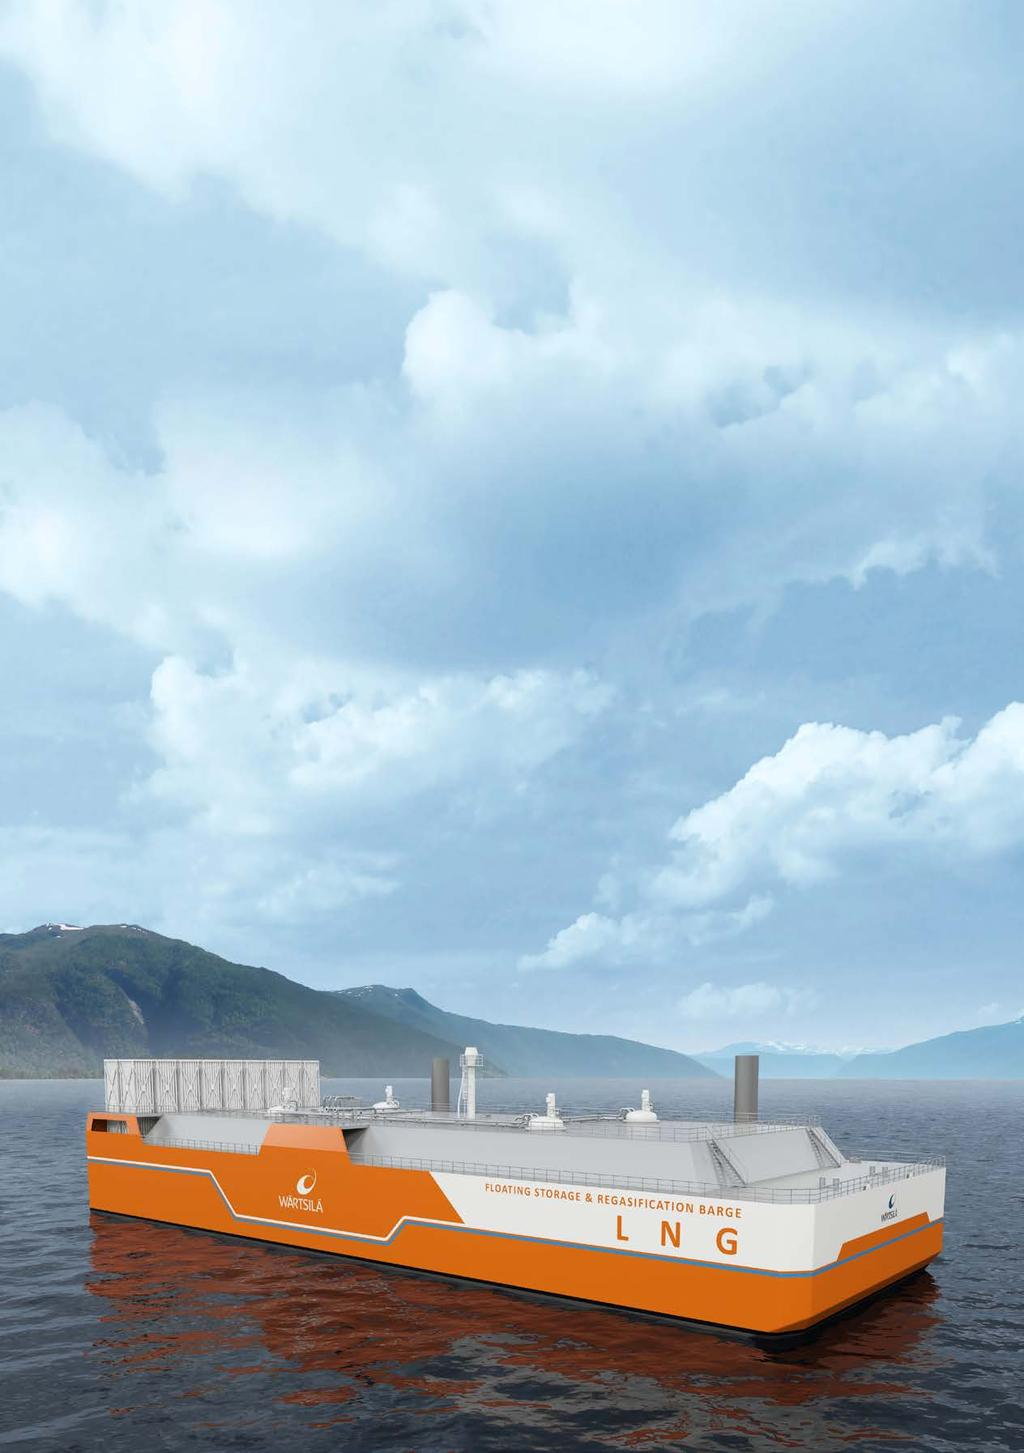 Floating storage and regasification barges A FLEXIBLE AND MOVABLE SOLUTION